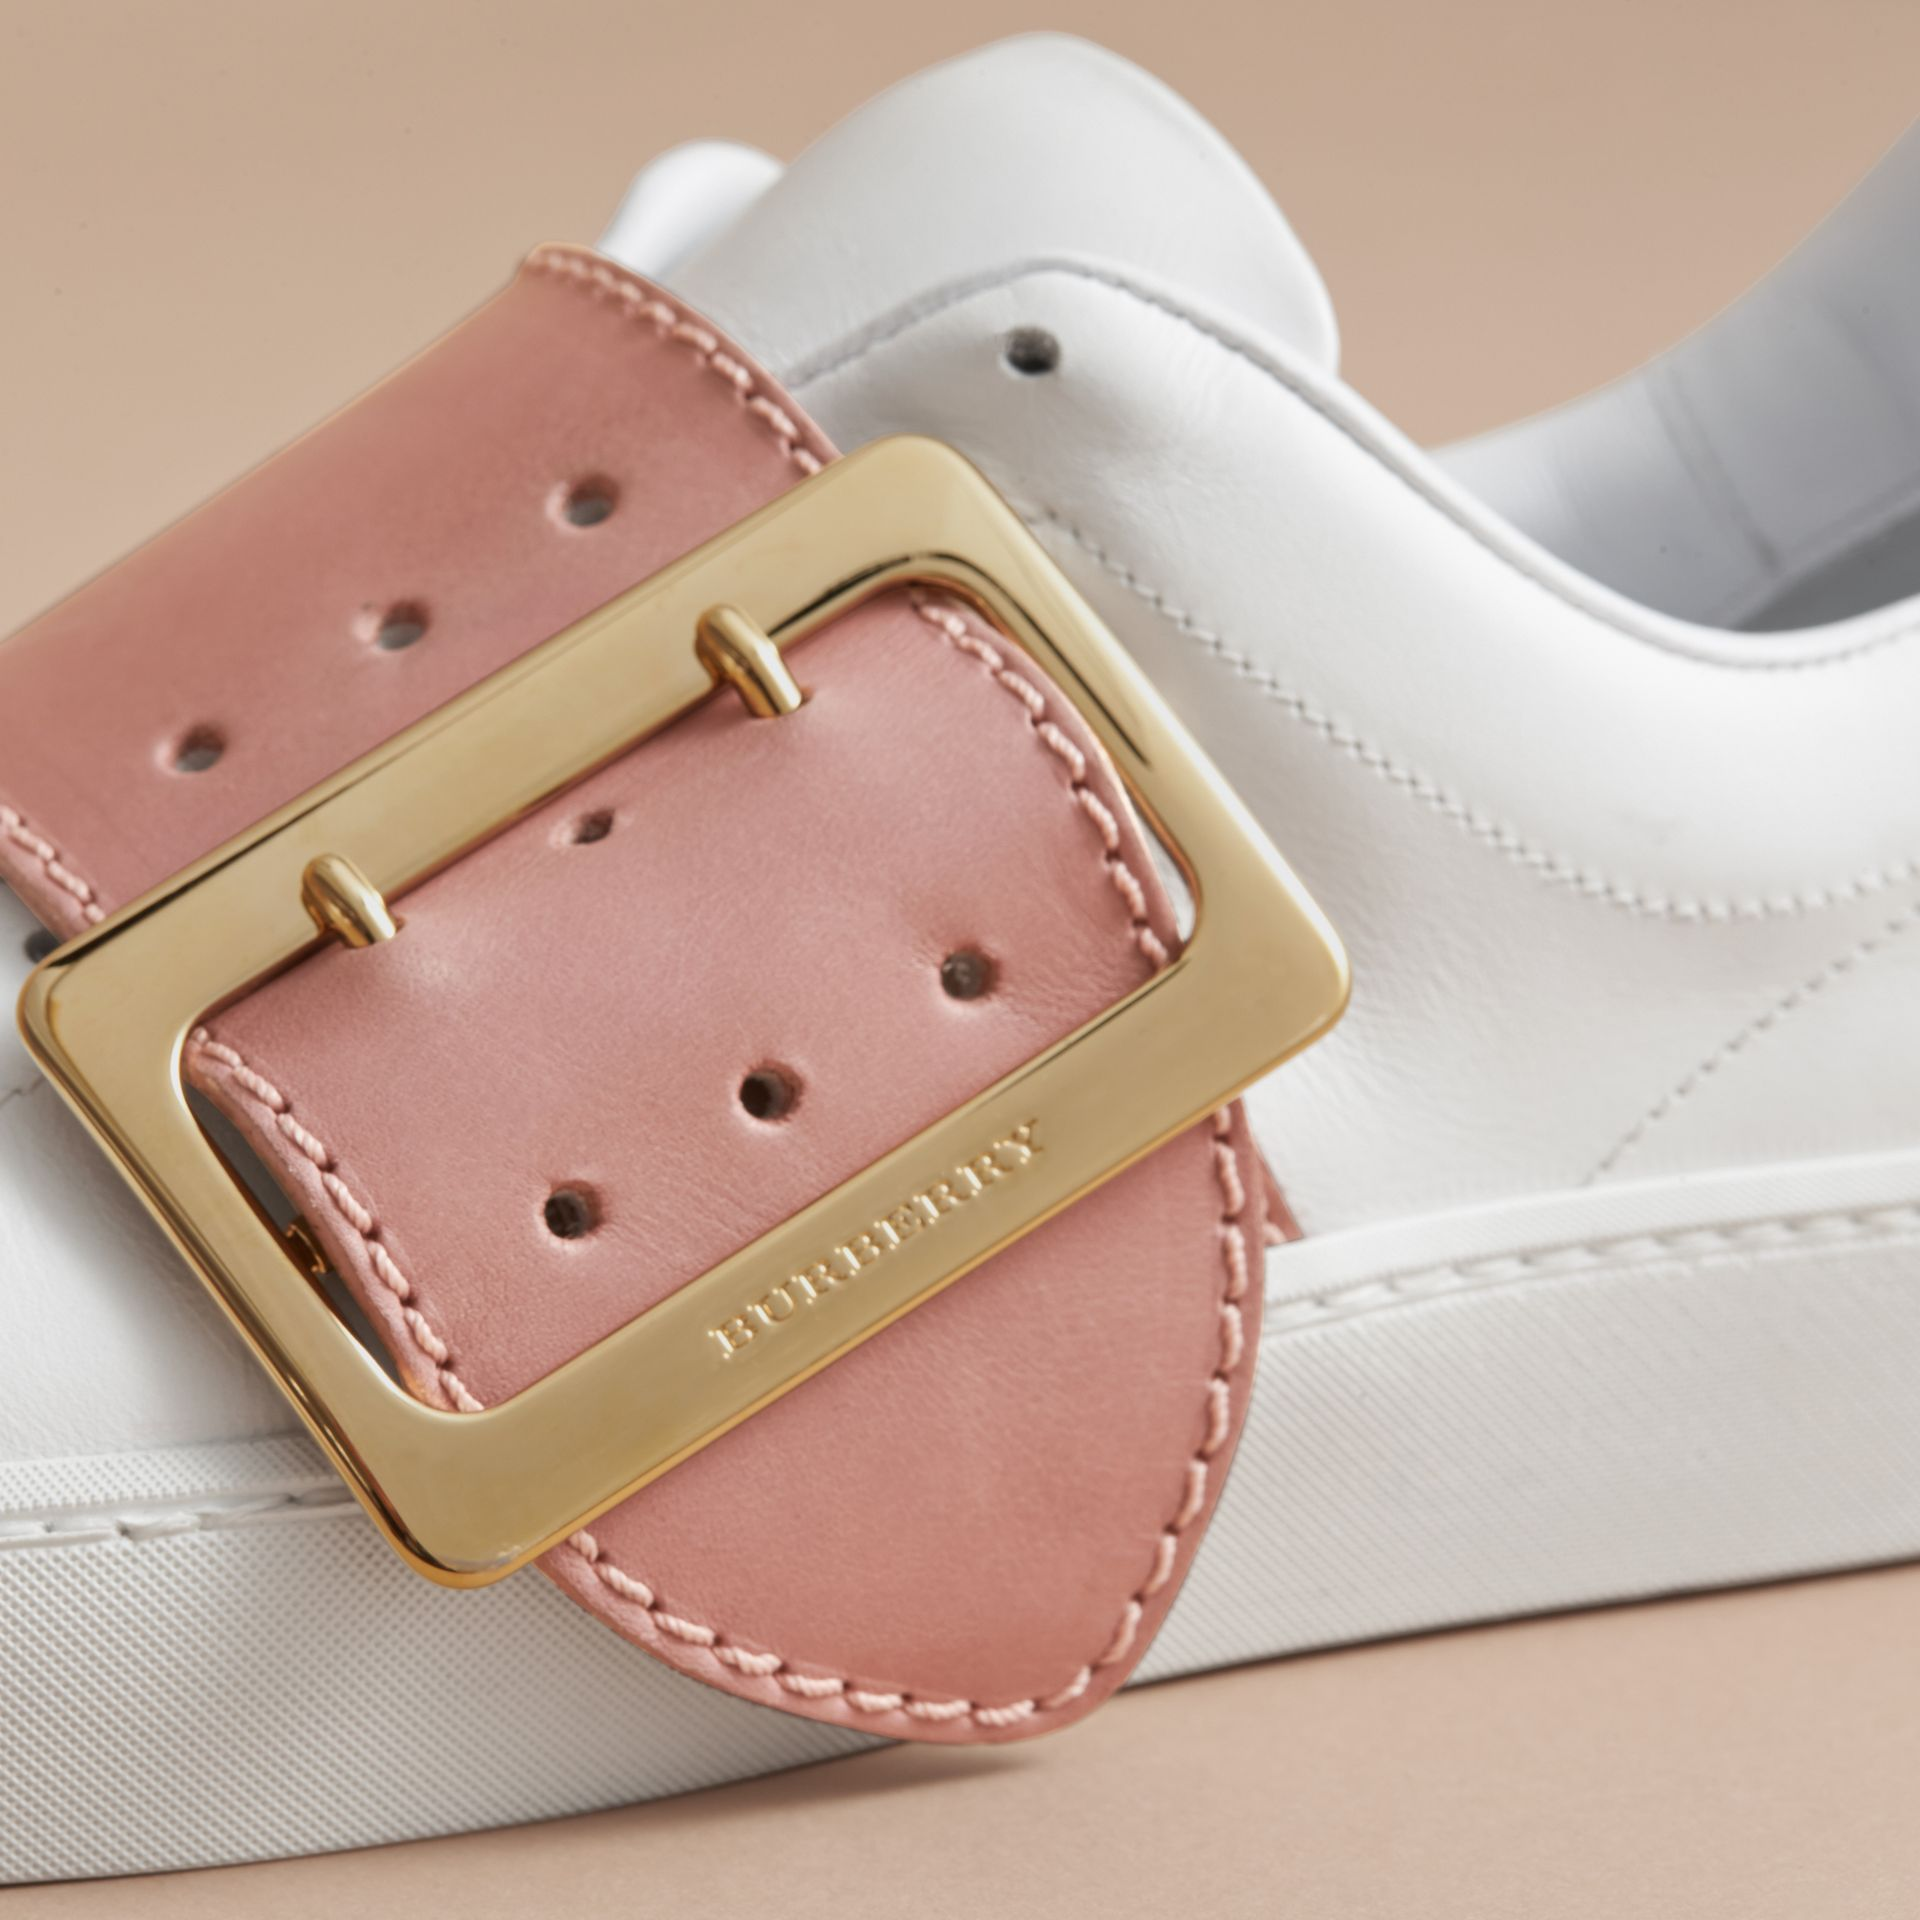 Buckle Detail Leather Trainers in Pink Apricot - Women | Burberry - gallery image 2